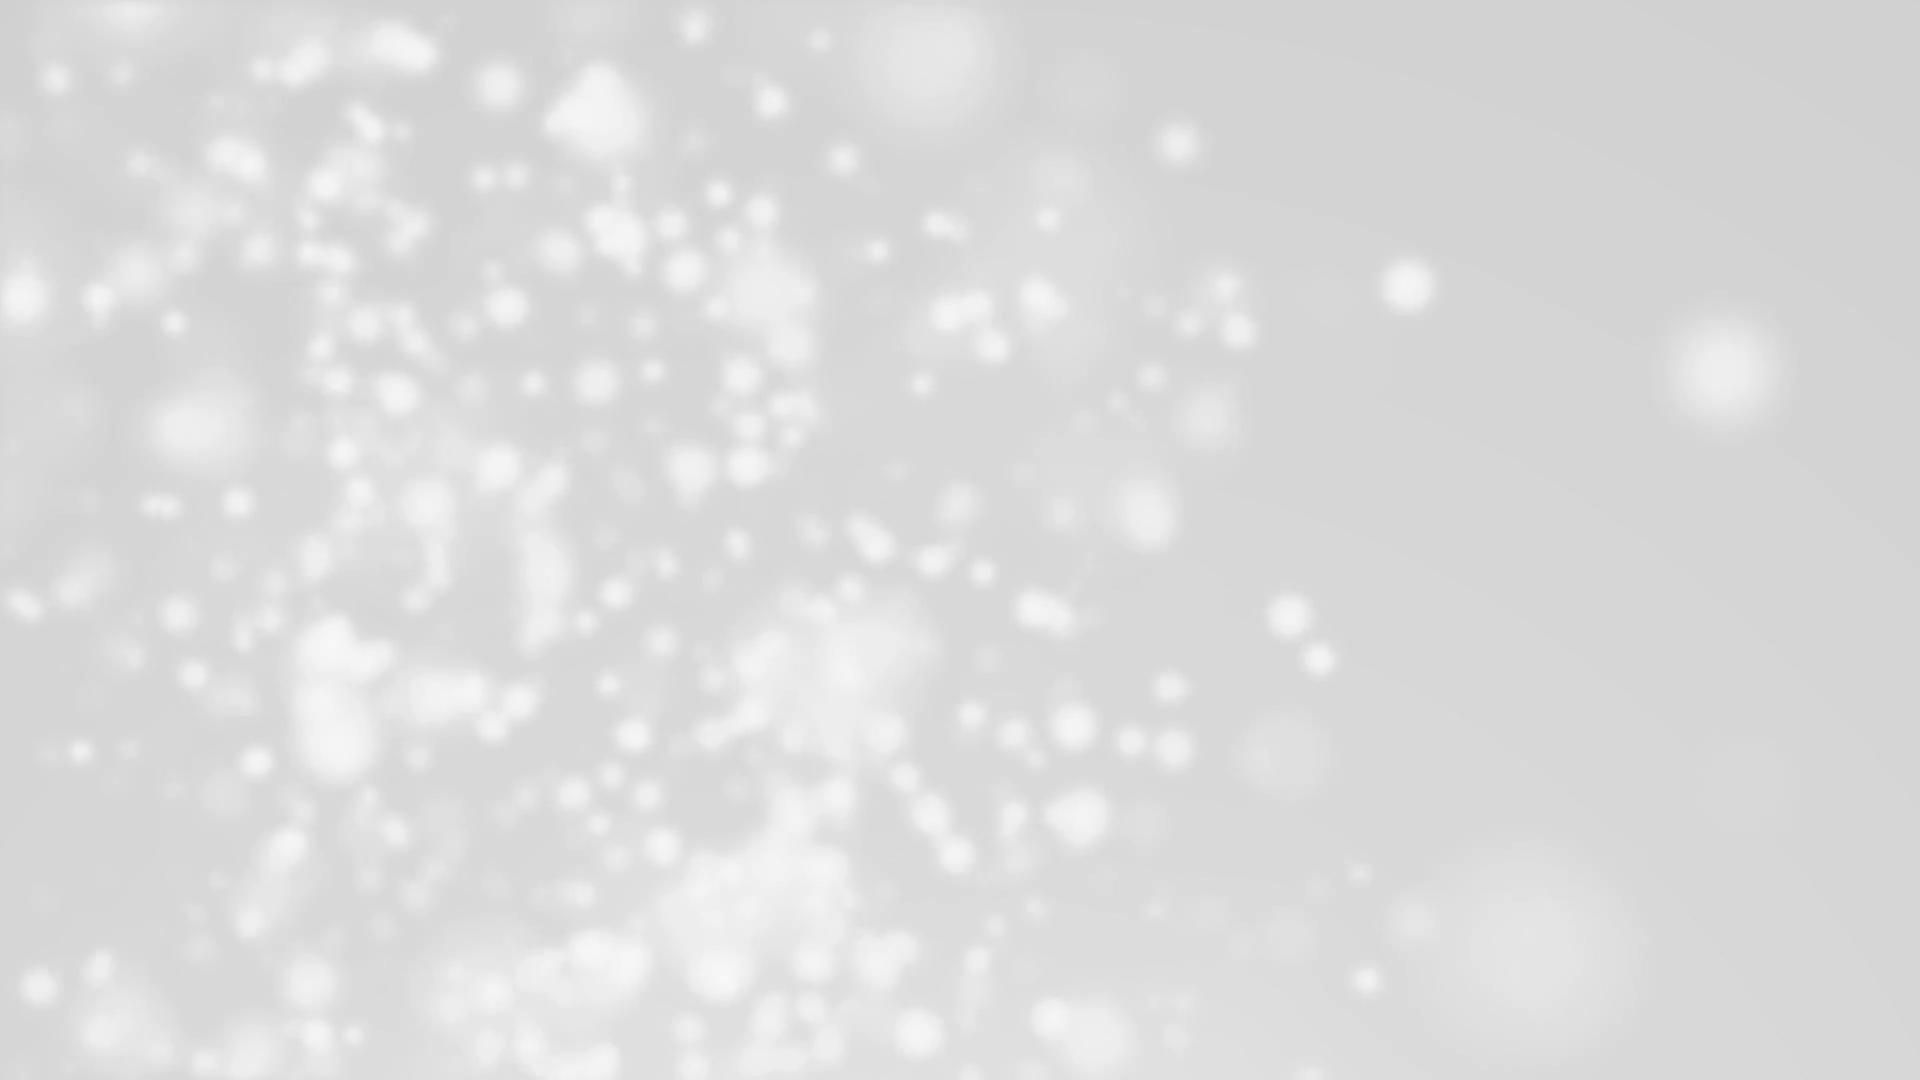 White Glitter Png, png collections at sccpre.cat.